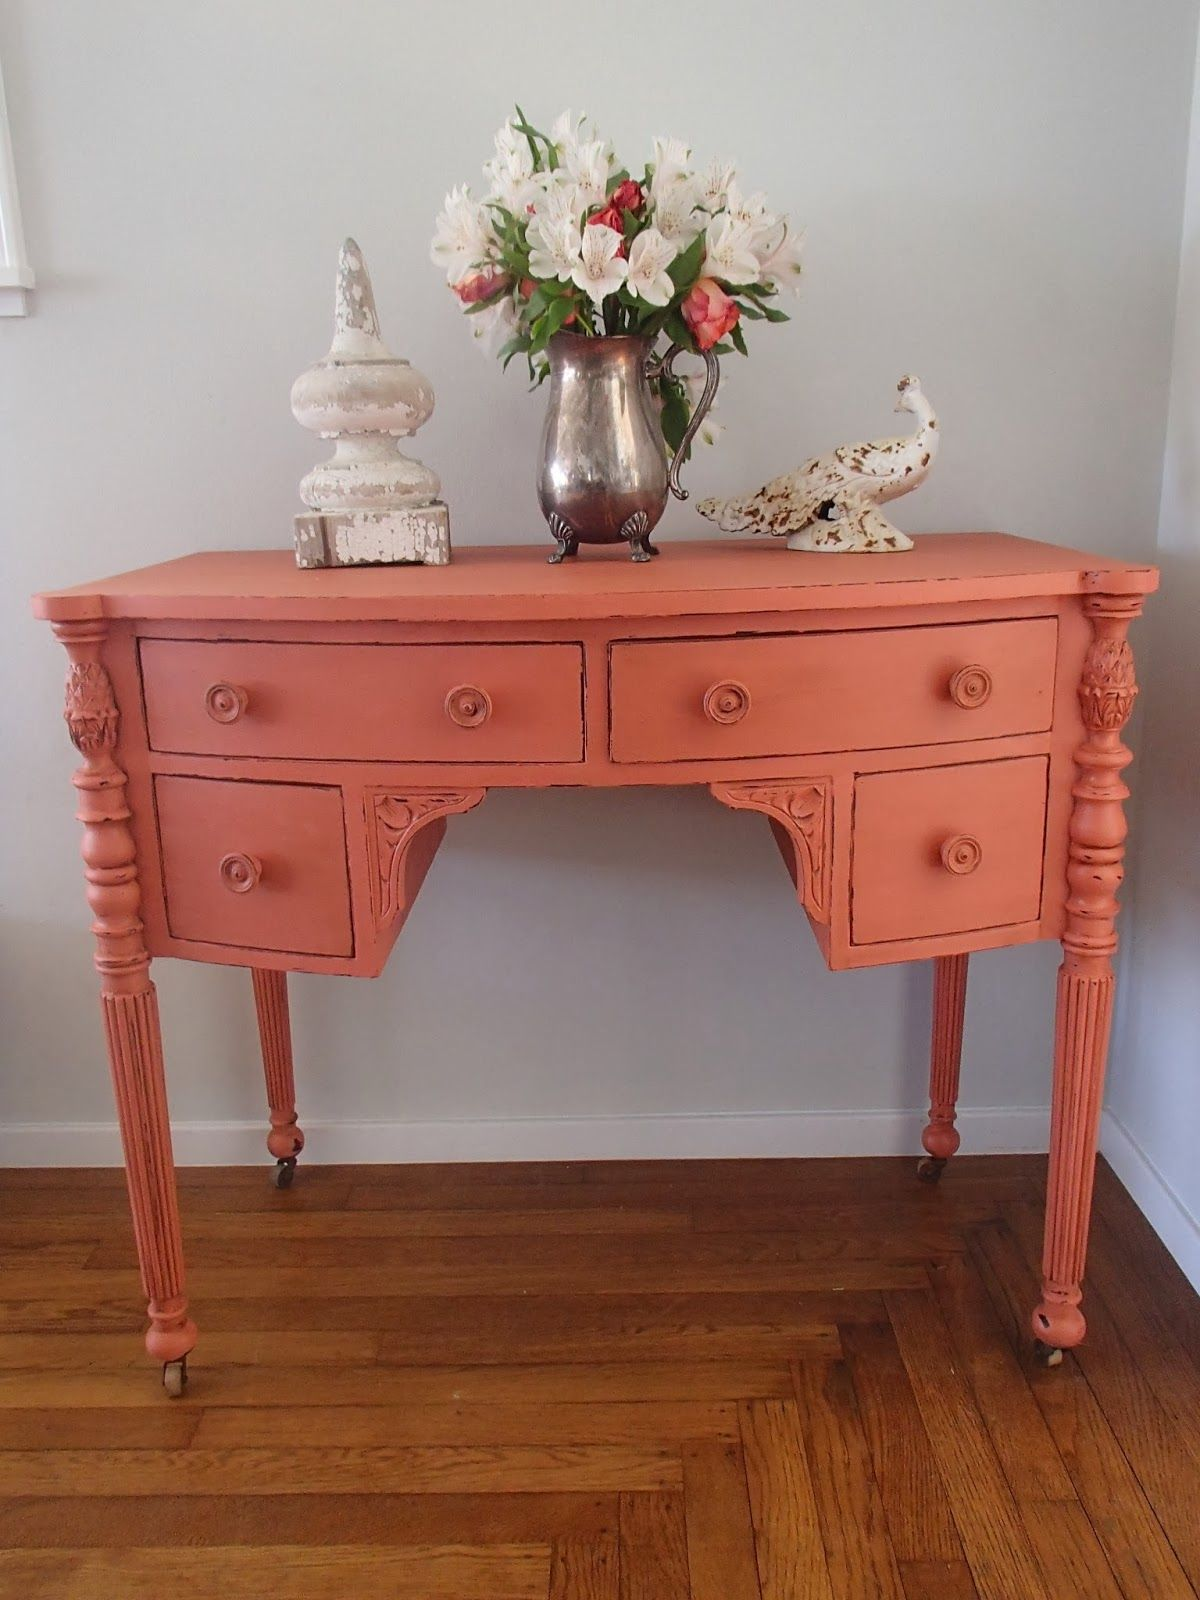 D.D.'s Cottage and Design: Gypsy Coral Desk (Apron Strings)